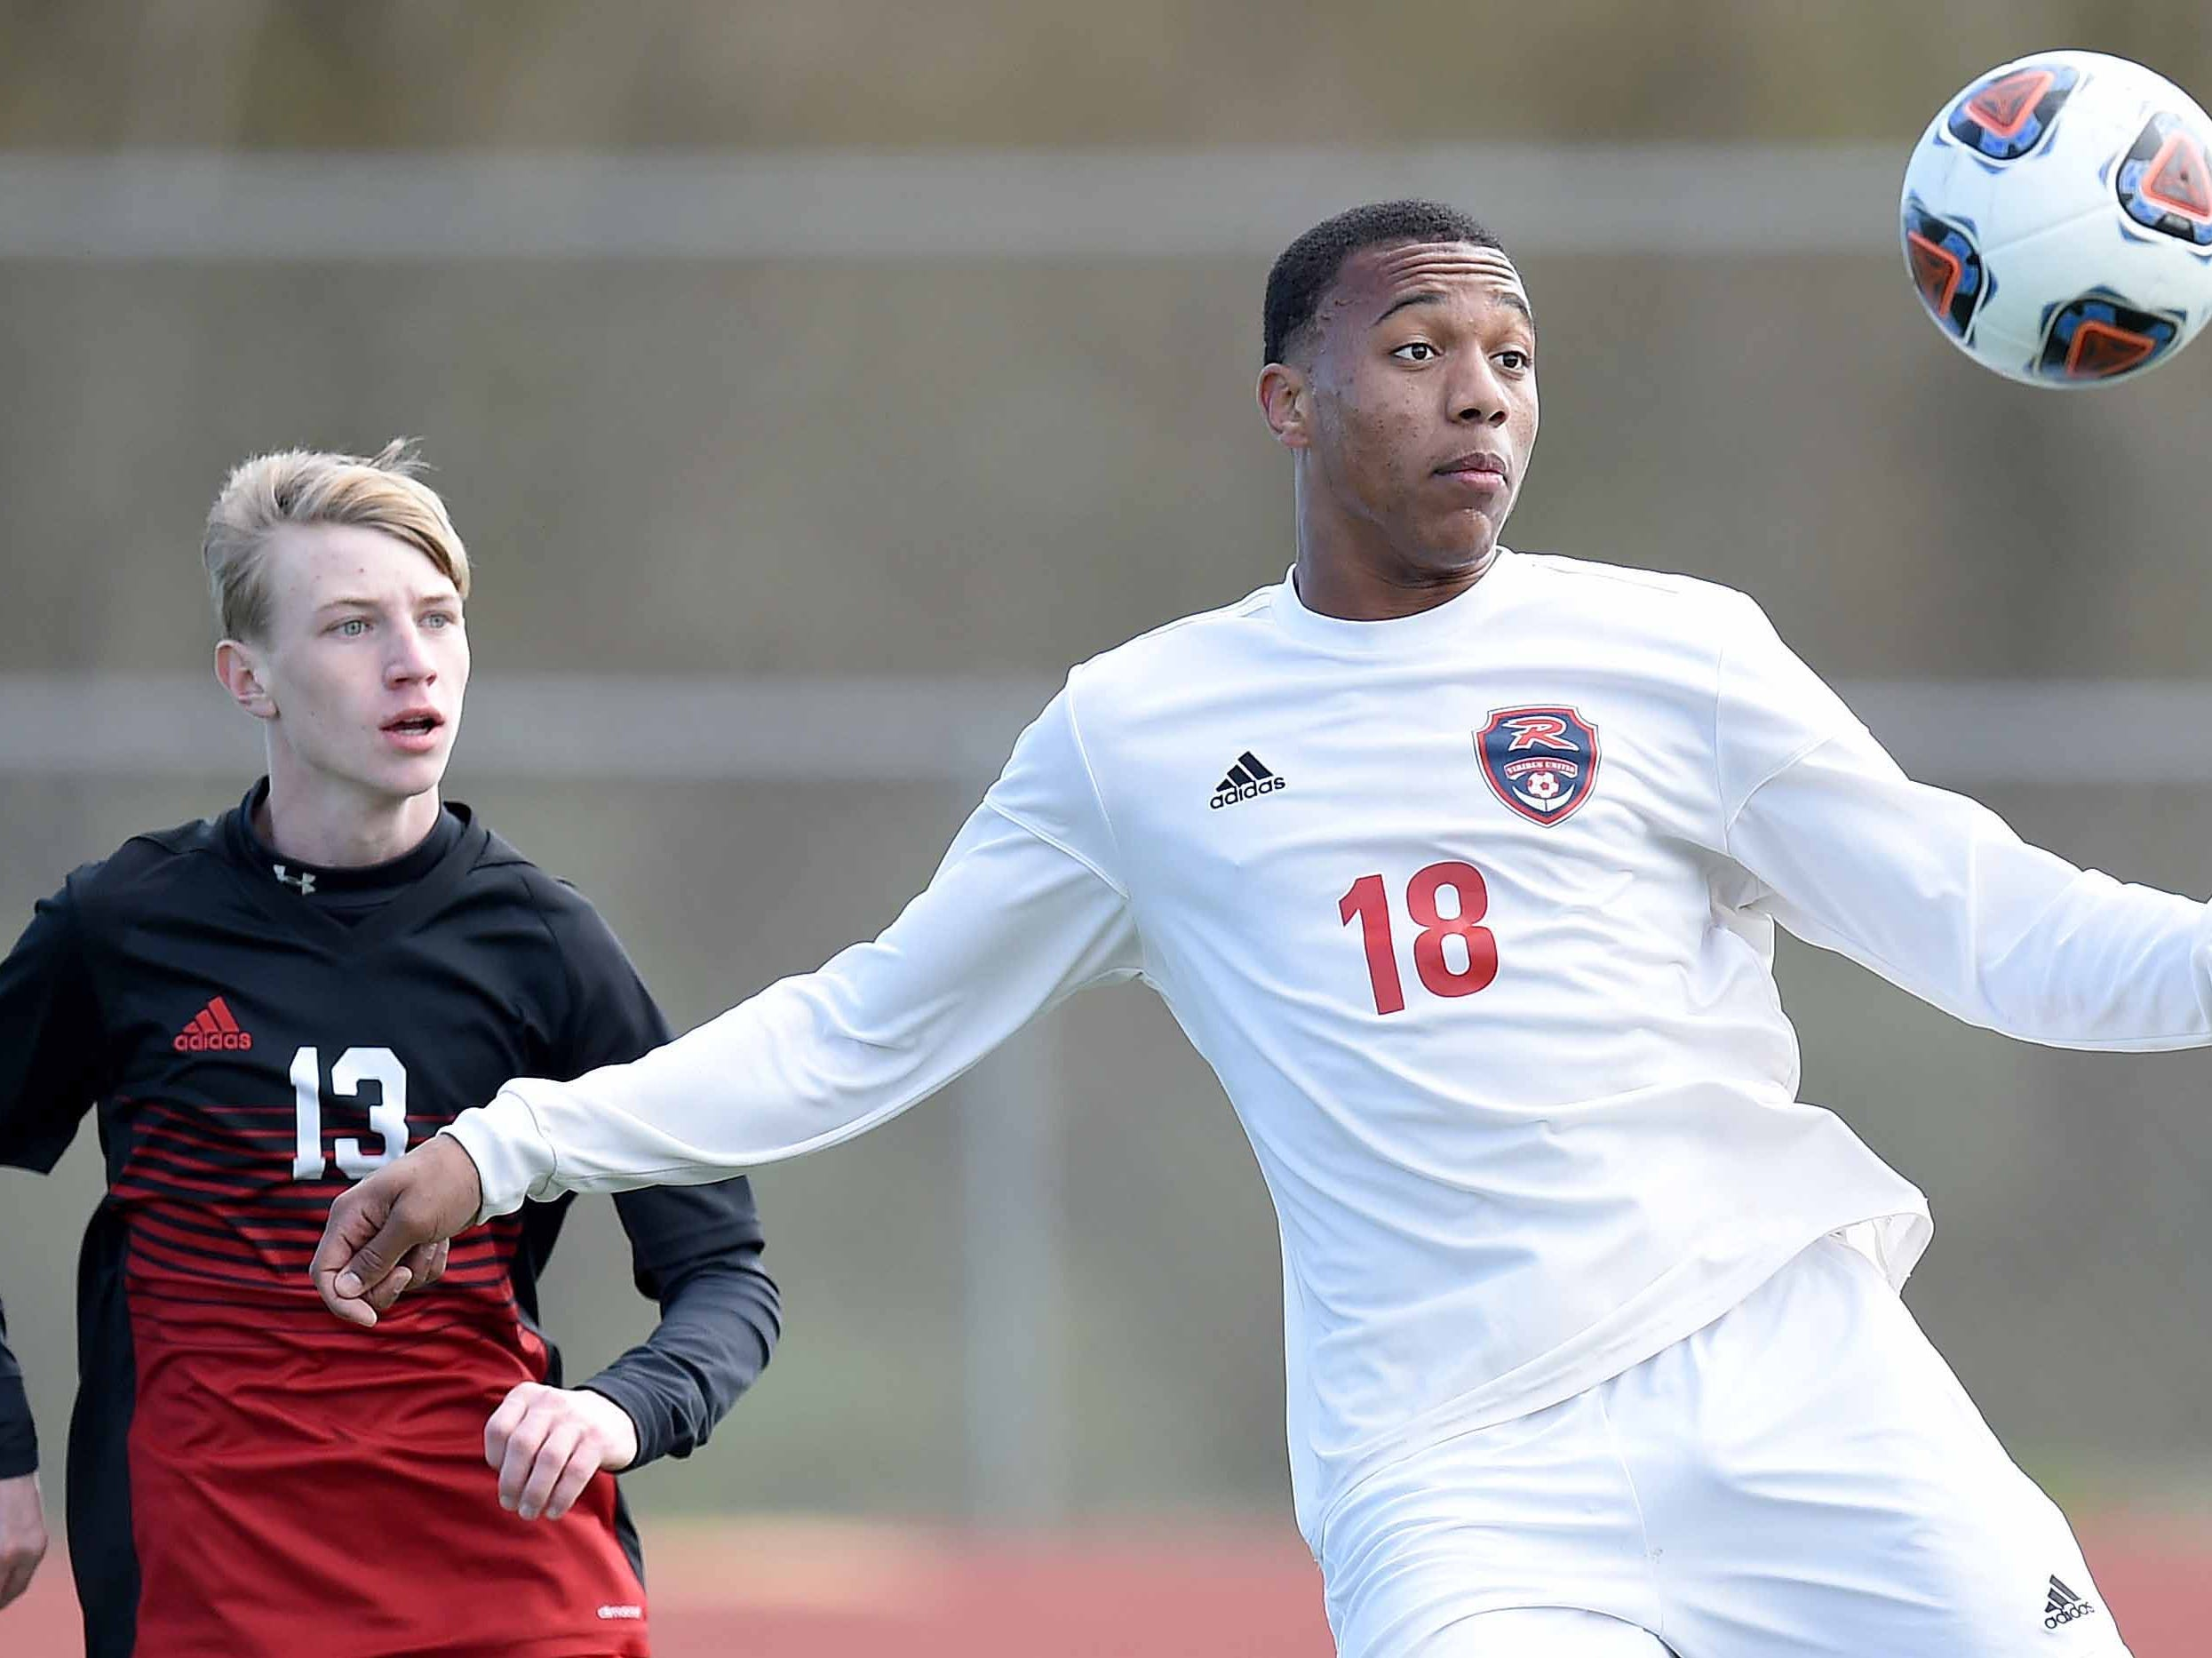 Richland's Greg Anderson (18) looks to clear the ball in front of West Lauderdale's Chance Davidson (13) in the Class 4A state championship in the MHSAA BlueCross Blue Shield of Mississippi Soccer Classic on Saturday, February 9, 2019, at Ridgeland High School in Ridgeland, Miss.